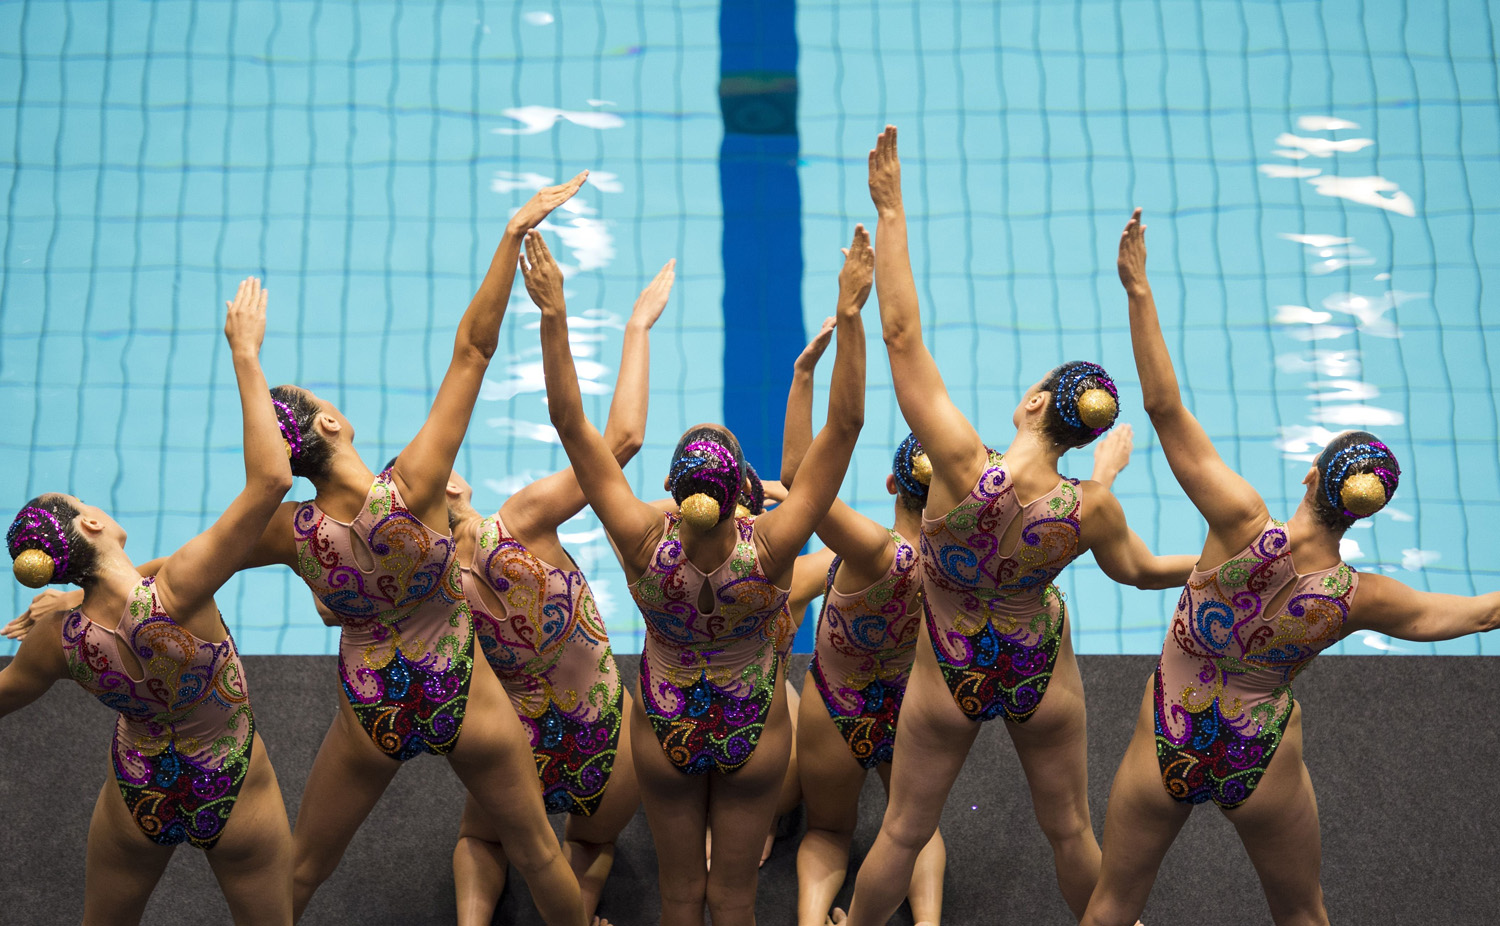 The Spain team performs their teams technical routine in the synchronized swimming event of the 32nd LEN European Swimming Championships on August 13, 2014 in Berlin.